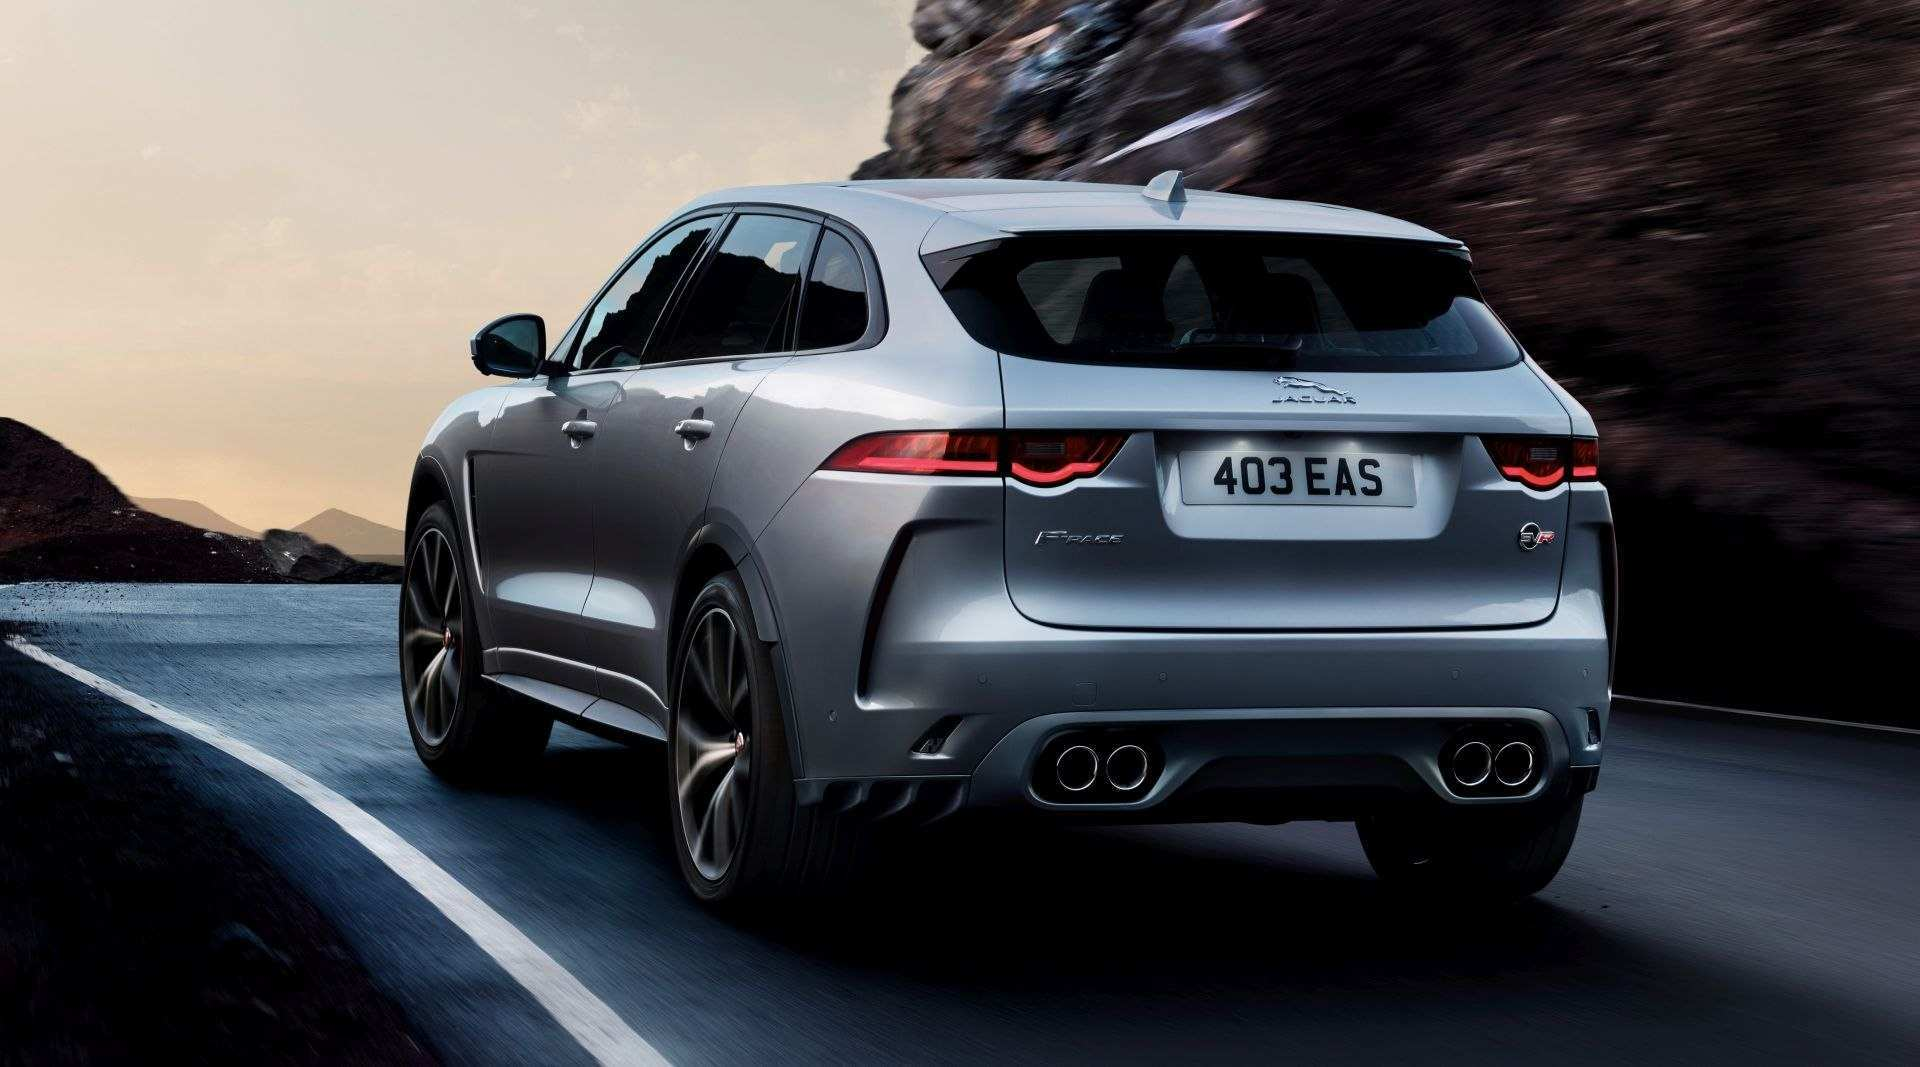 69 All New 2020 Jaguar I Pace Release Date Interior